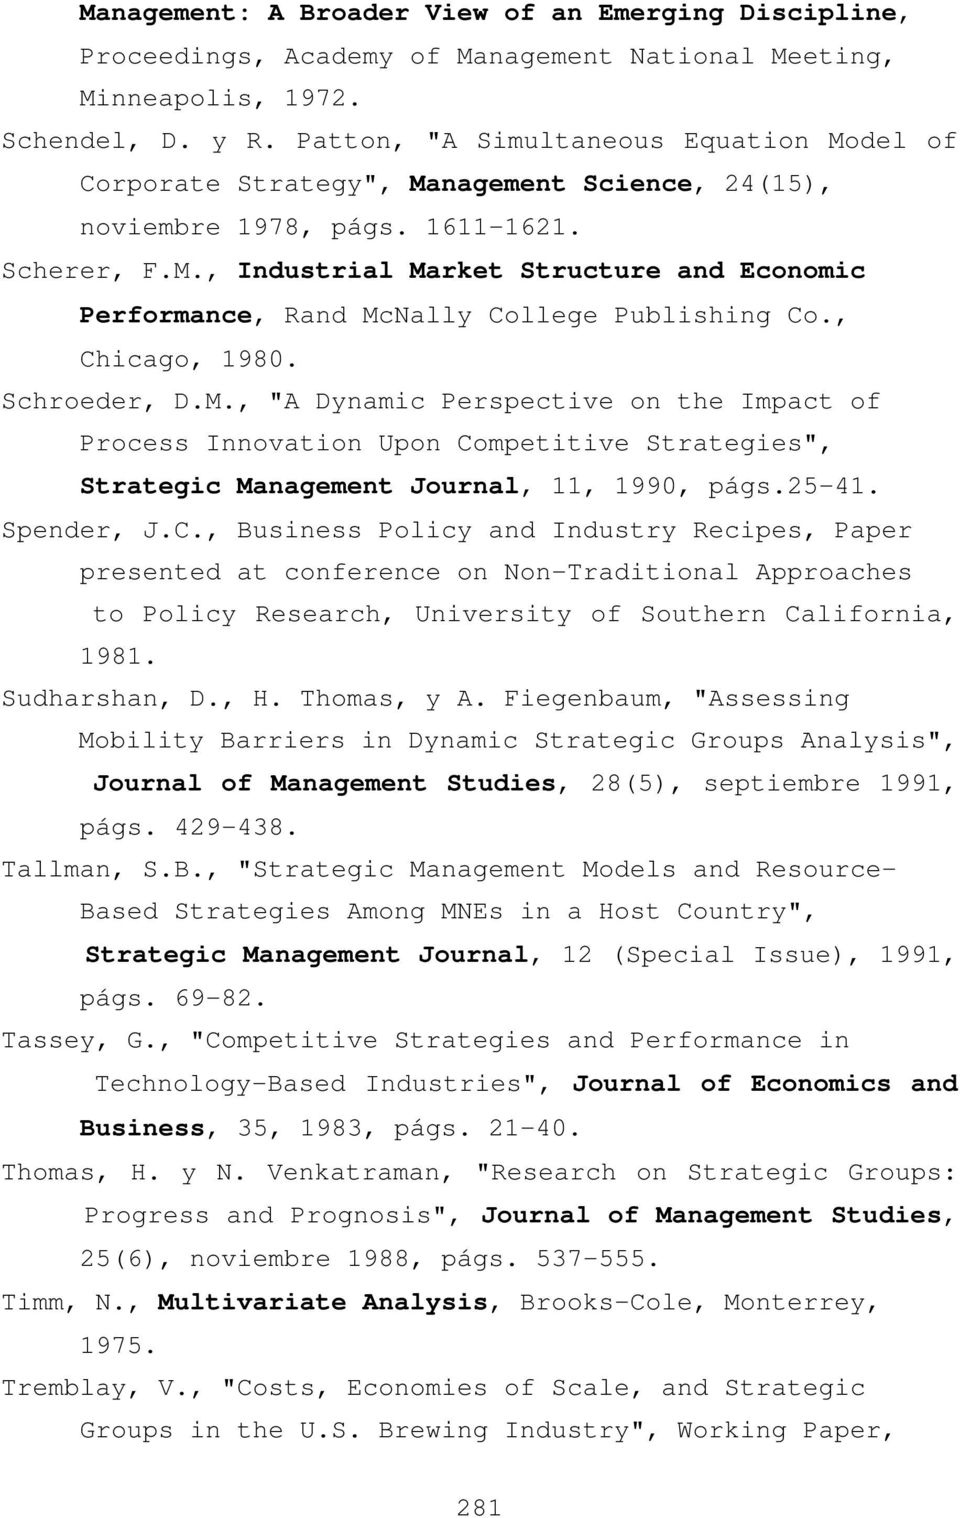 ", Chicago, 1980. Schroeder, D.M., ""A Dynamic Perspective on the Impact of Process Innovation Upon Competitive Strategies"", Strategic Management Journal, 11, 1990, págs.25-41. Spender, J.C., Business Policy and Industry Recipes, Paper presented at conference on Non-Traditional Approaches to Policy Research, University of Southern California, 1981."